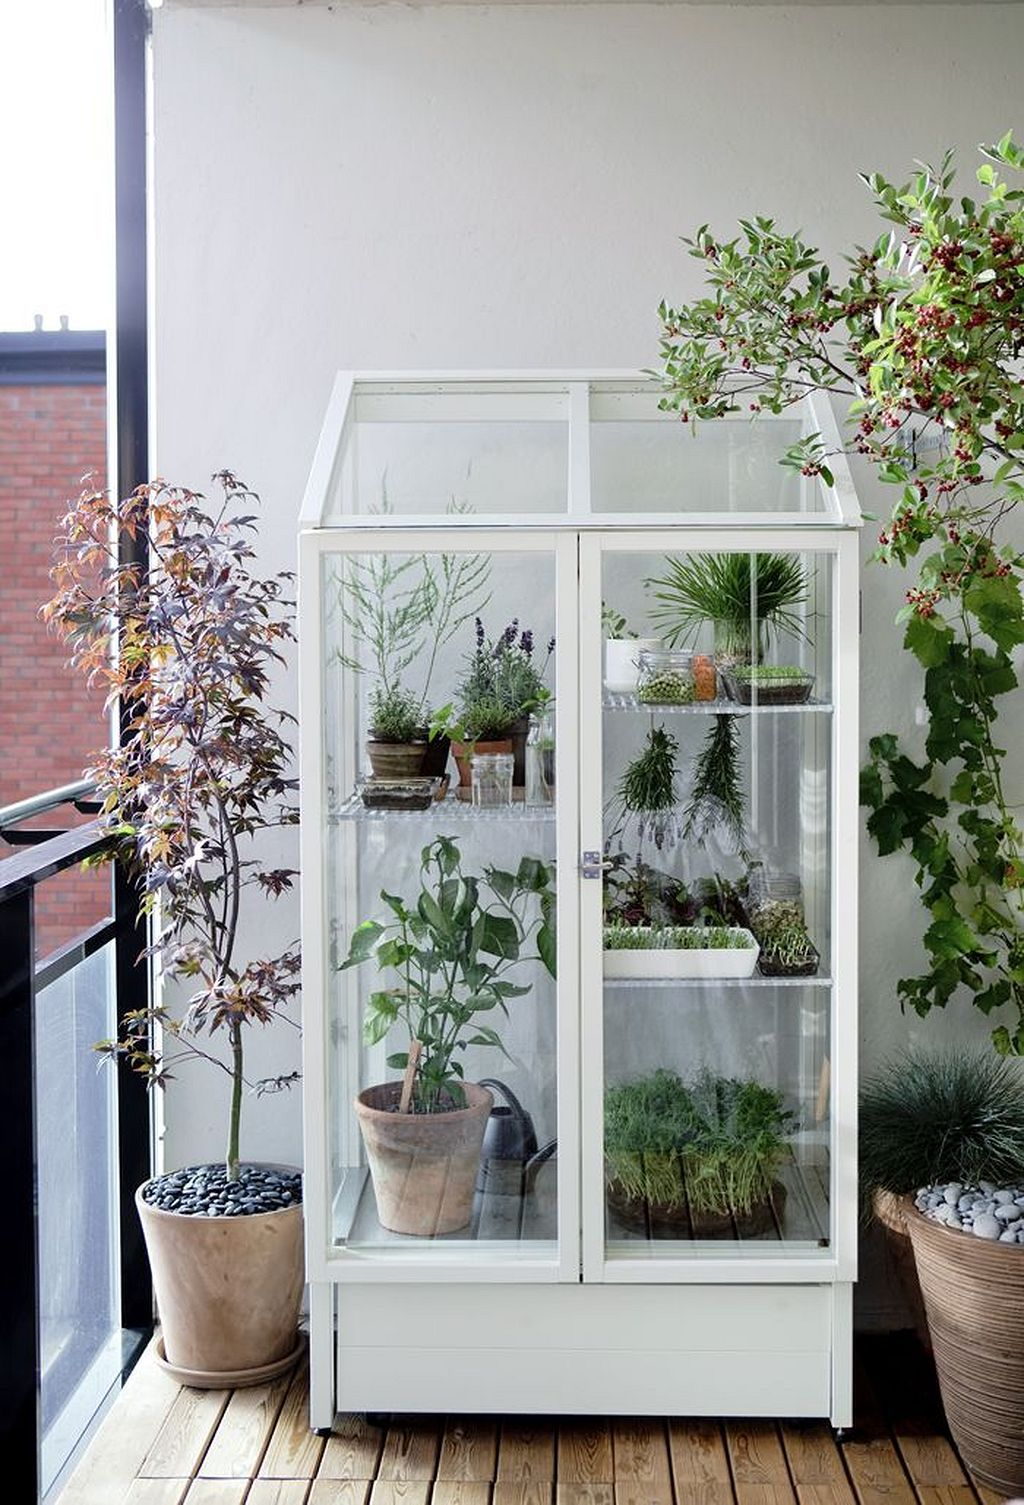 30+ Mini Indoor Garden Ideas to Green Your Home | Garden ideas ...